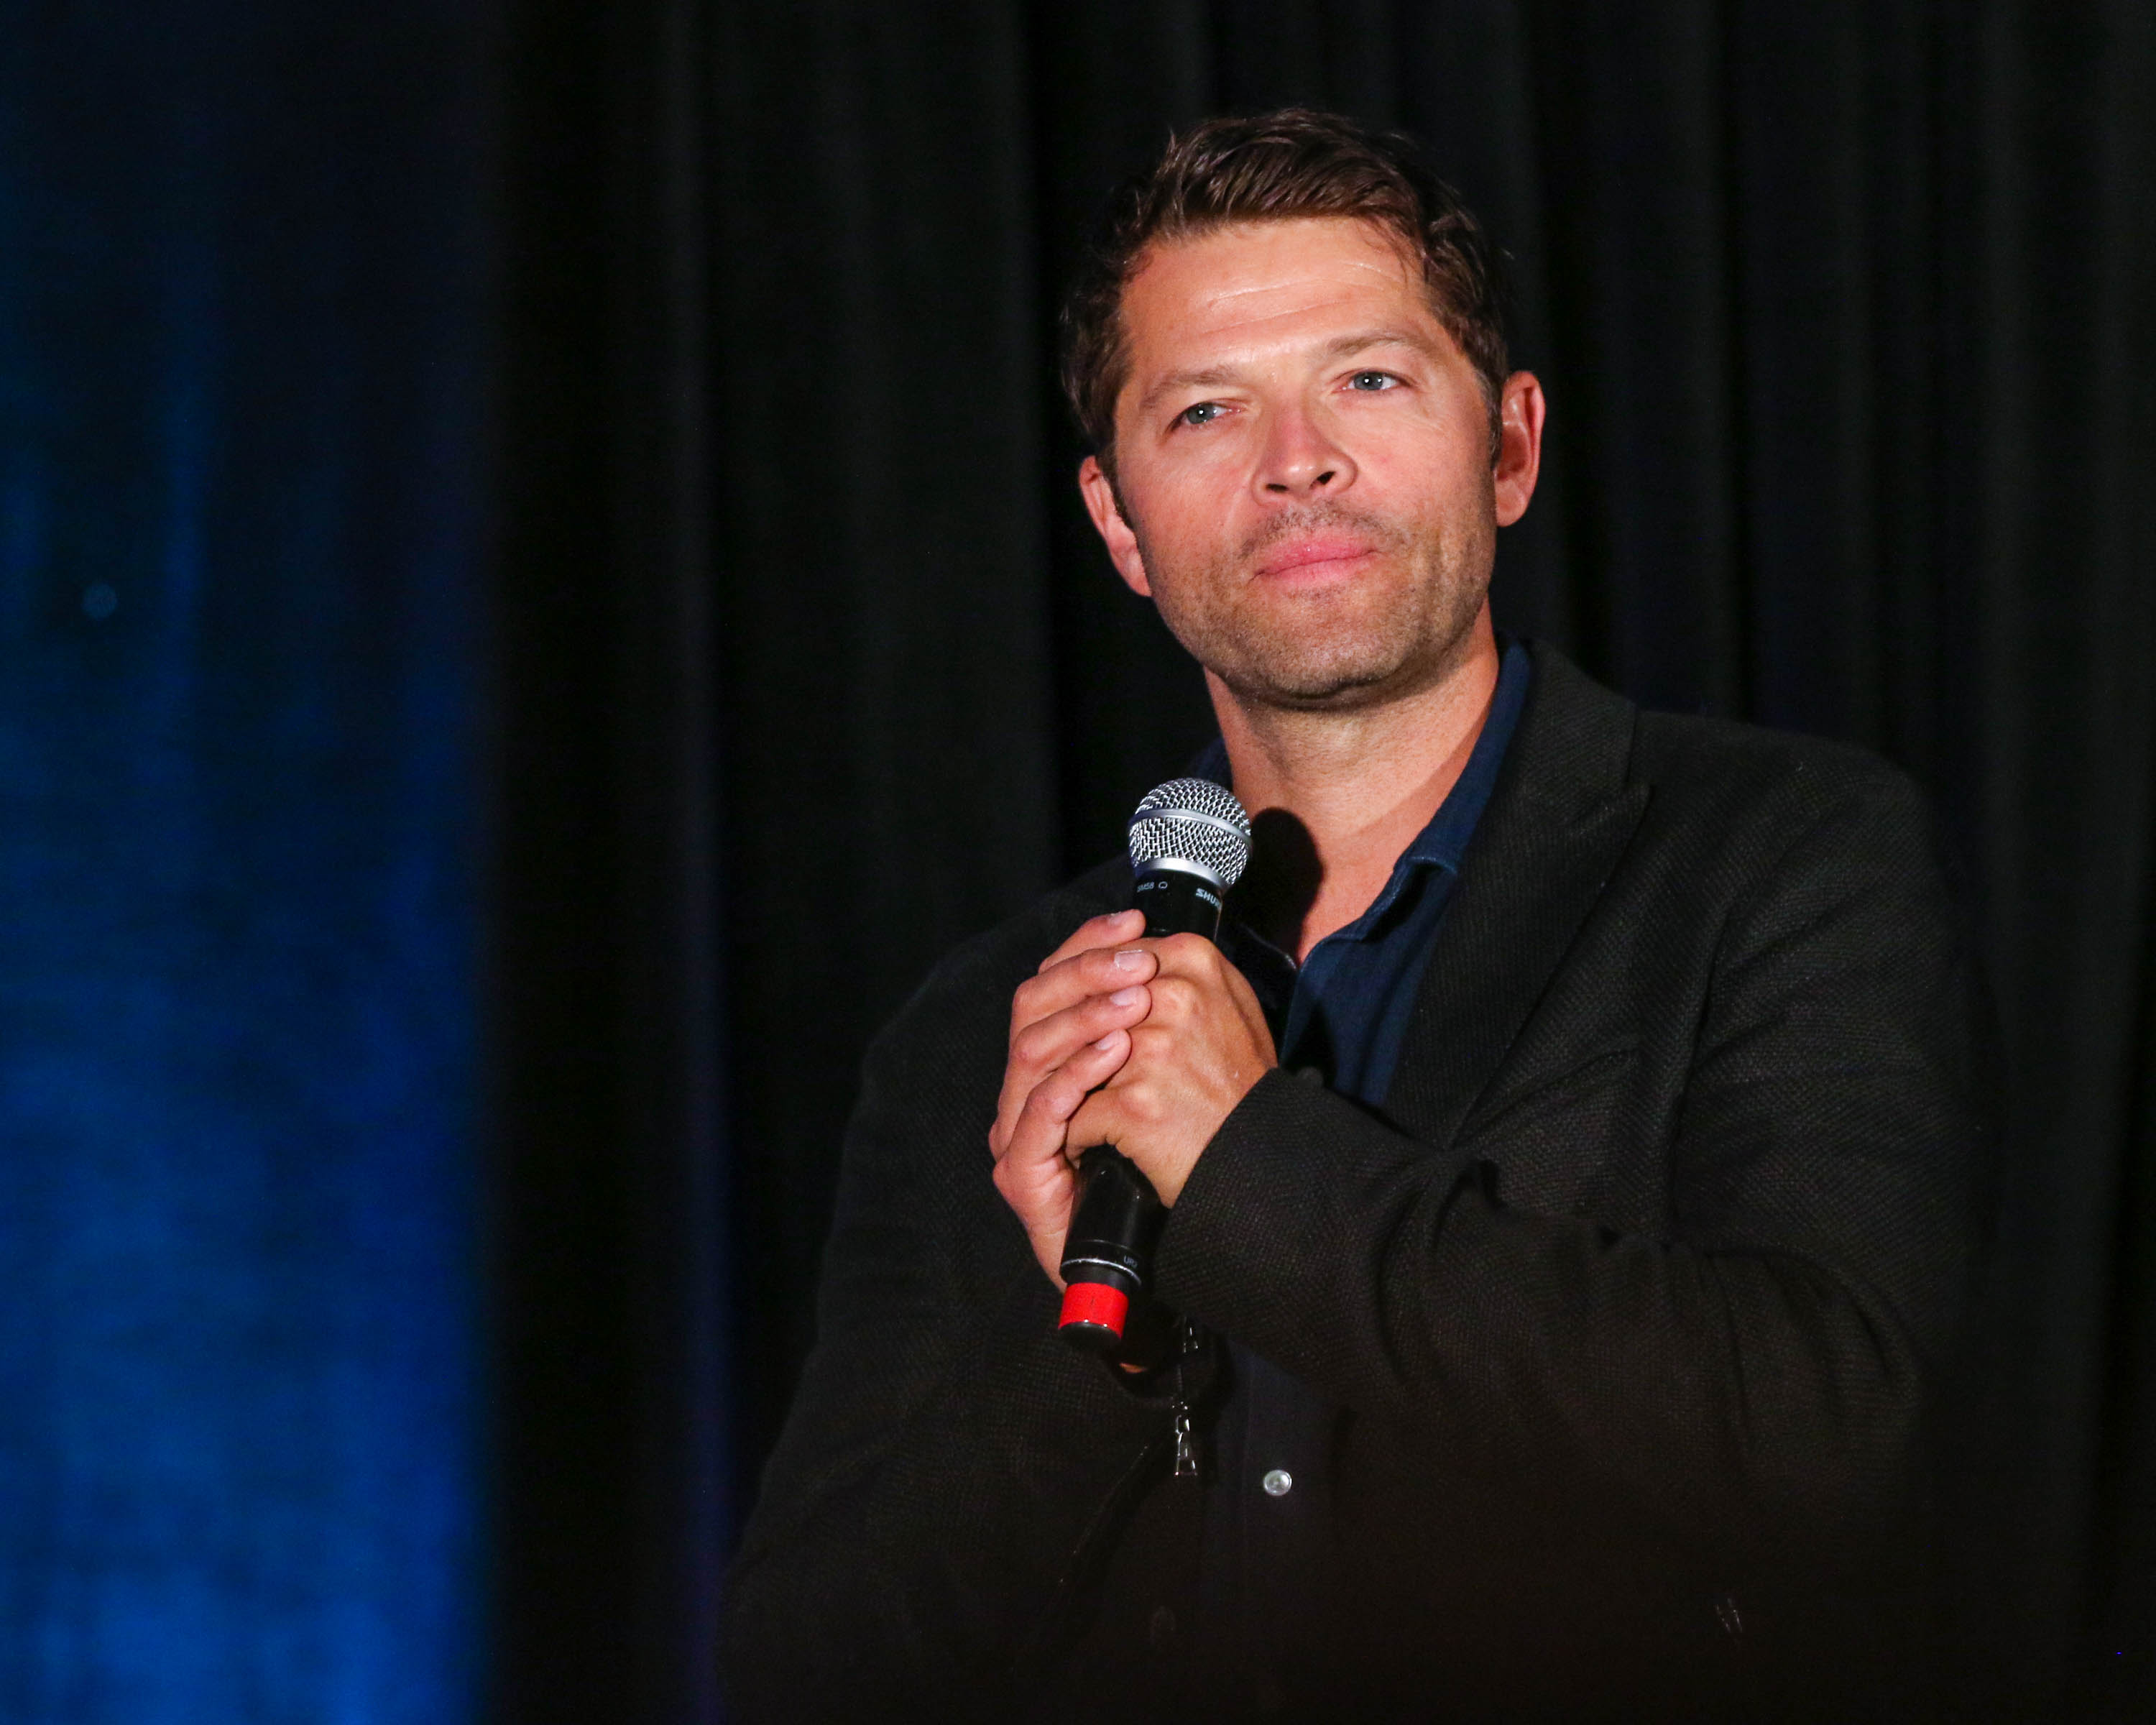 misha collins castiel at supernatural convention 2016